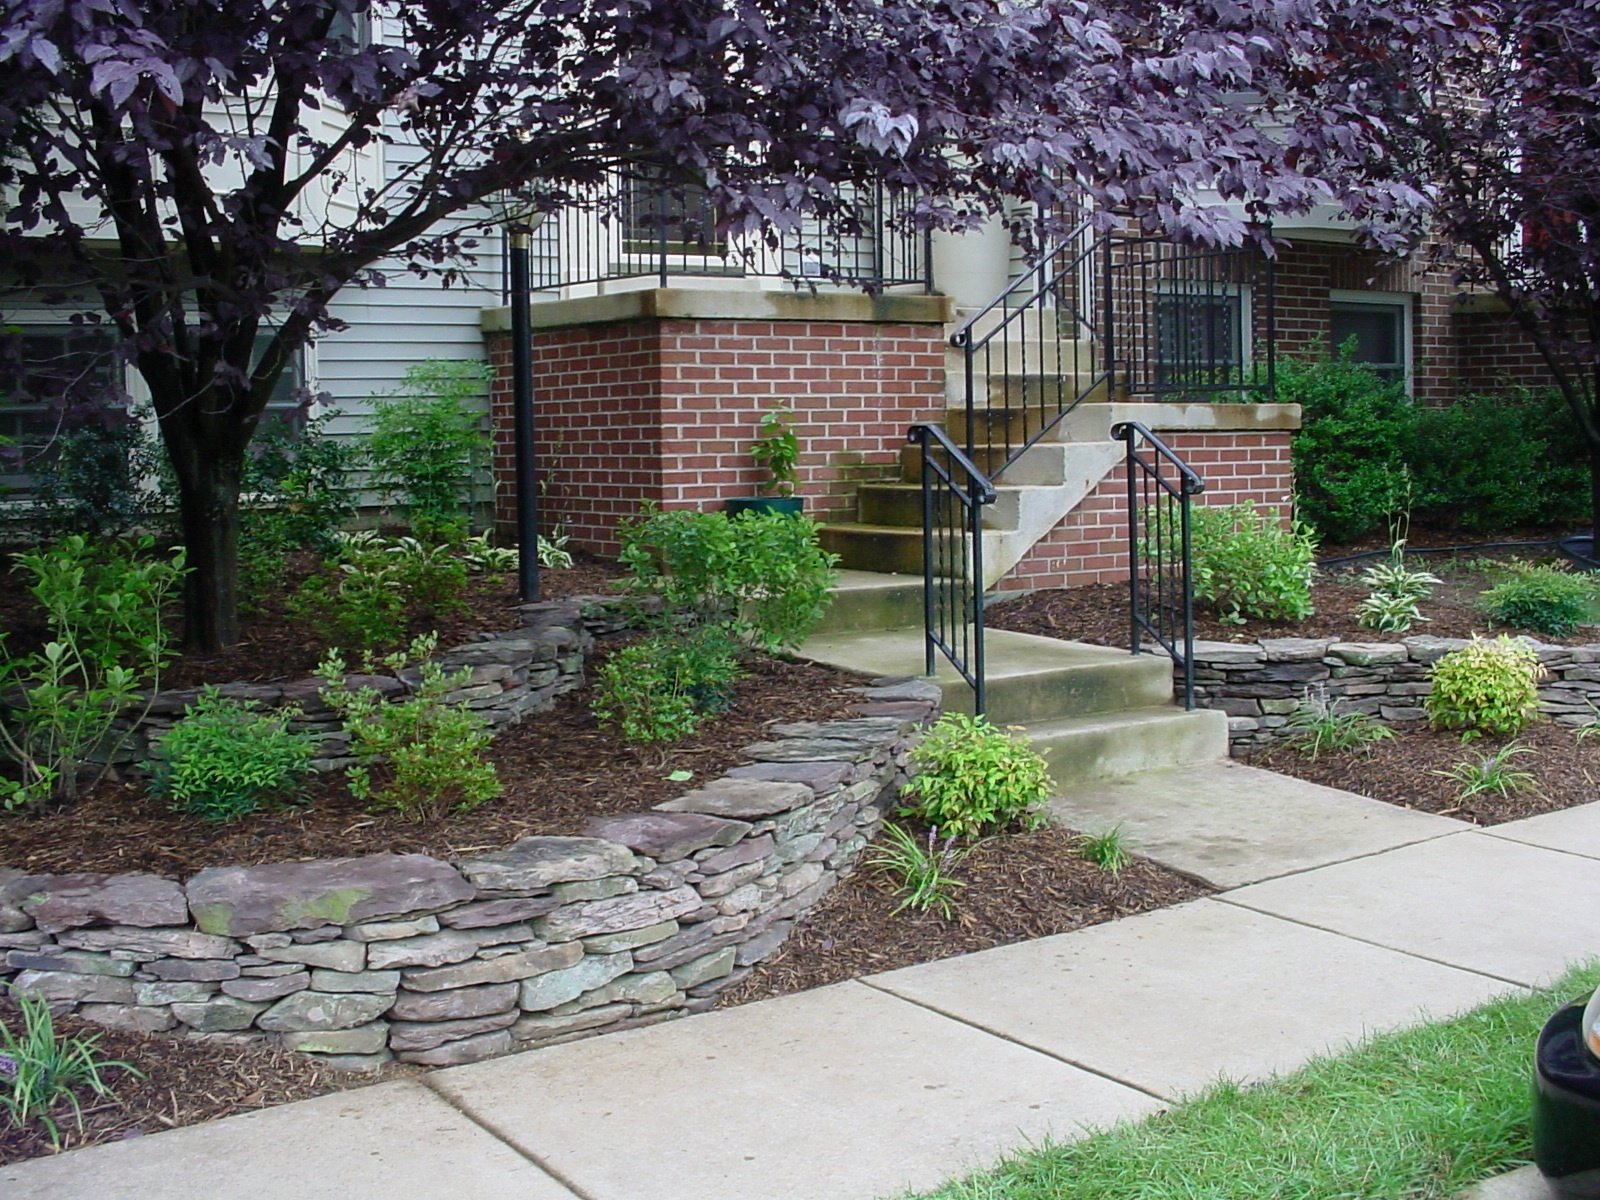 Creative townhouse landscape with trees, shrubs, and natural stone